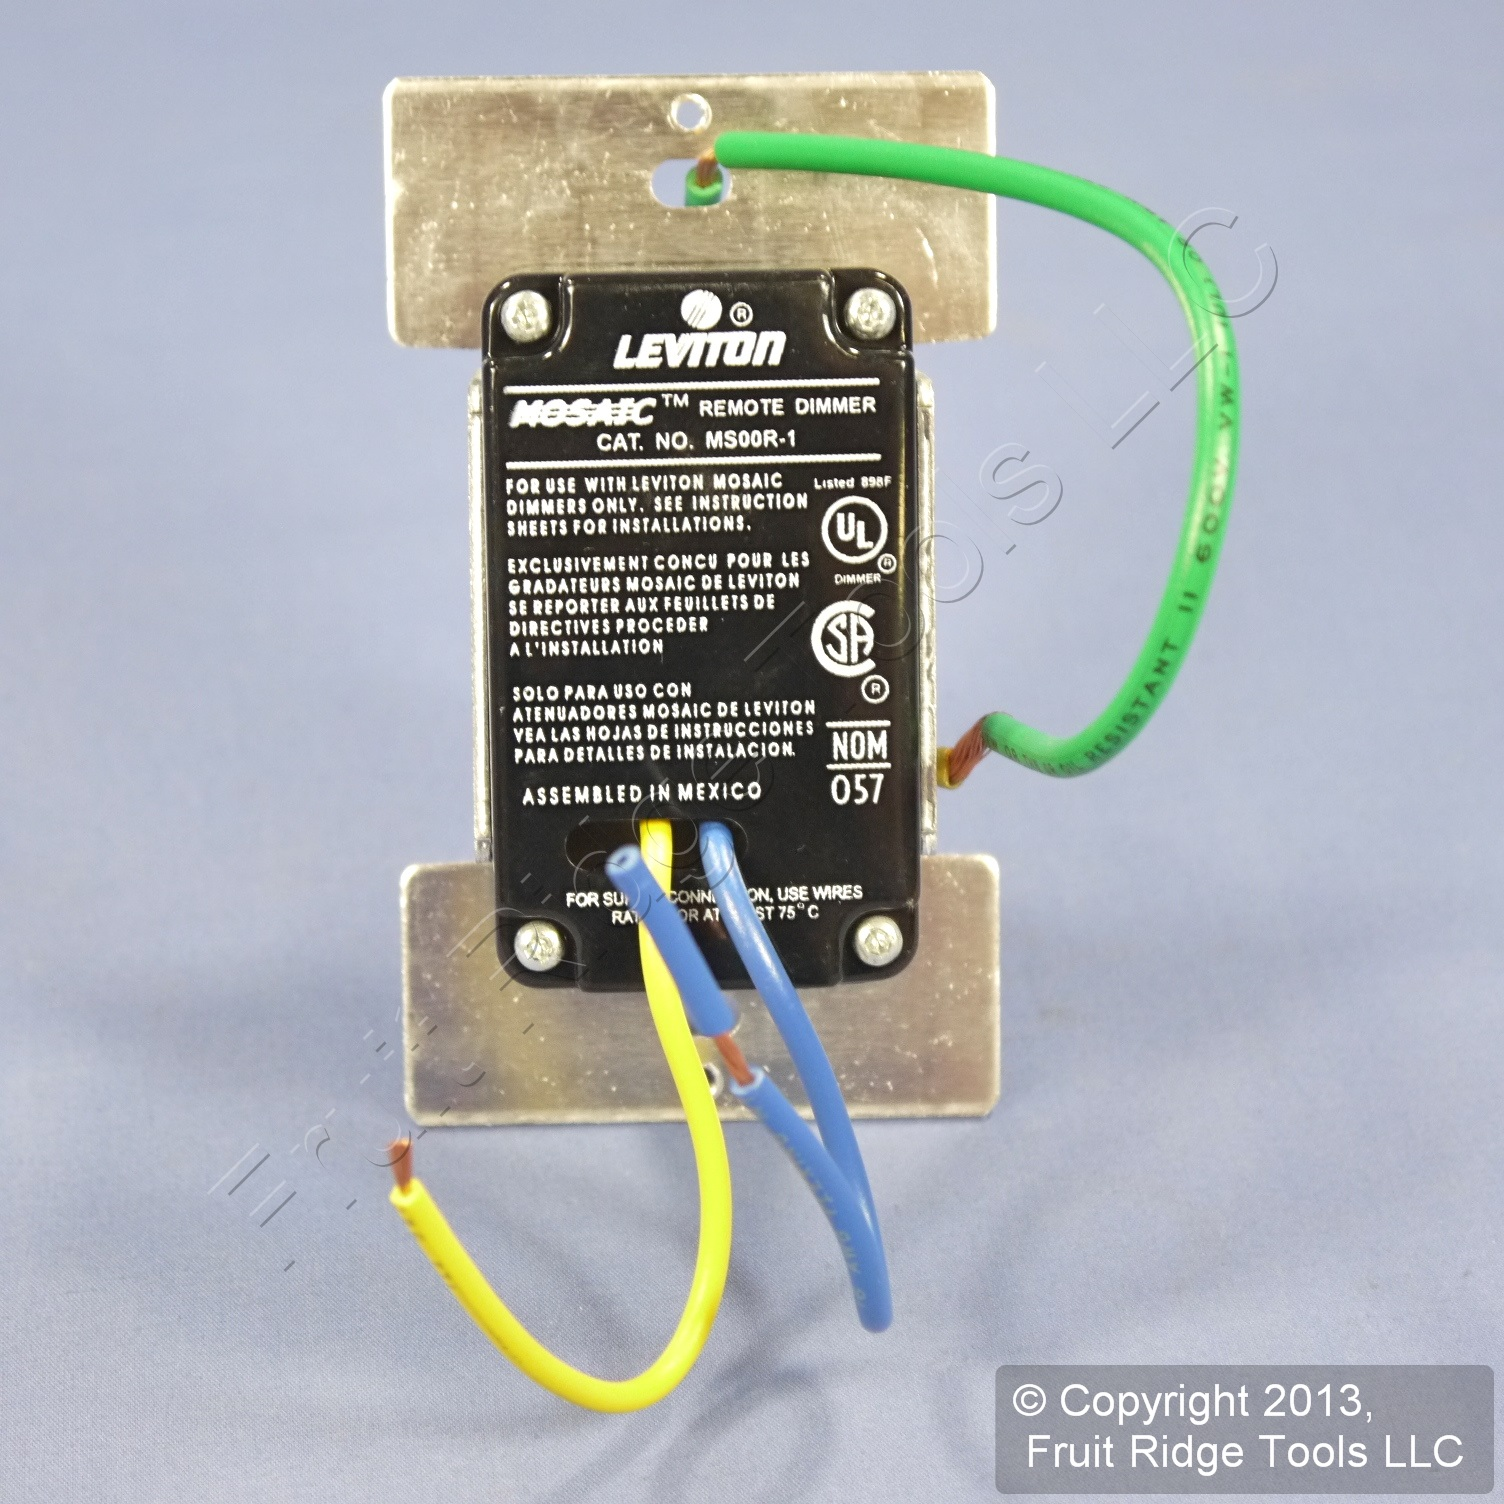 Shop Leviton Almond Multi Remote For Mural Touch Point Dimmer Nom 057 Switch Wiring Diagram Ms00r 10a Fruit Ridge Tools